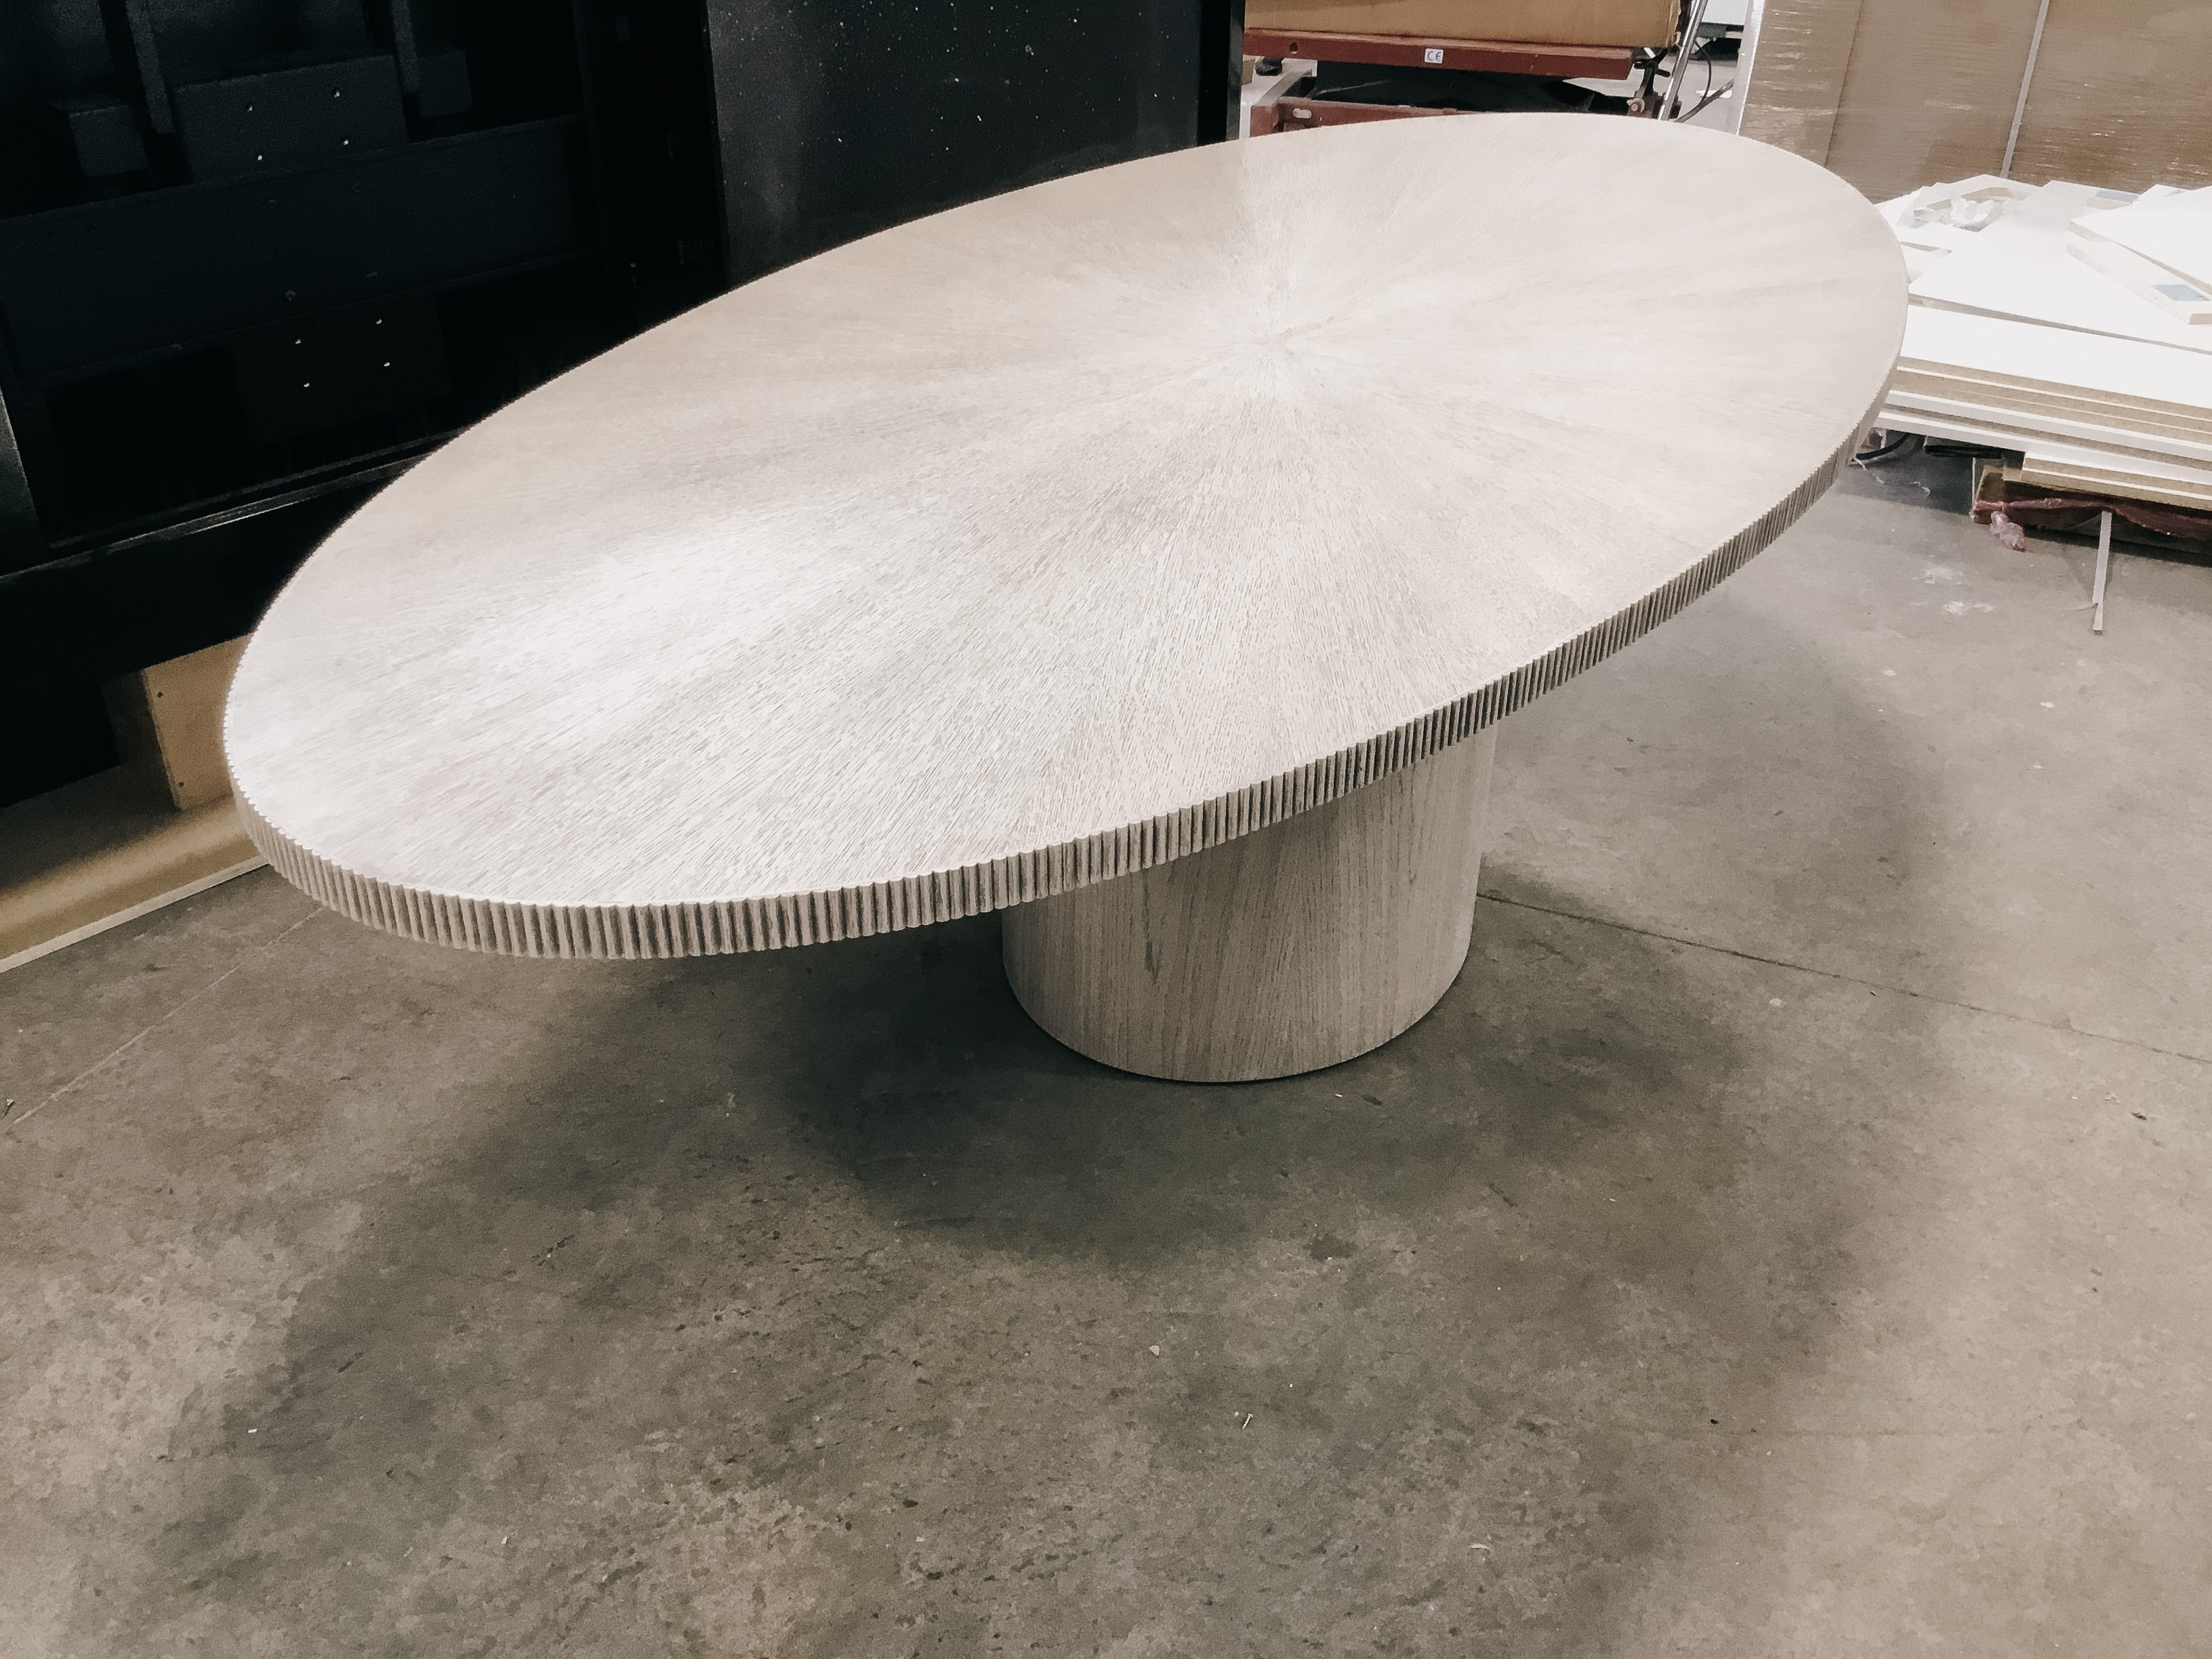 Elliptical Radiate Table by MDM Design Studio / Facet Furniture